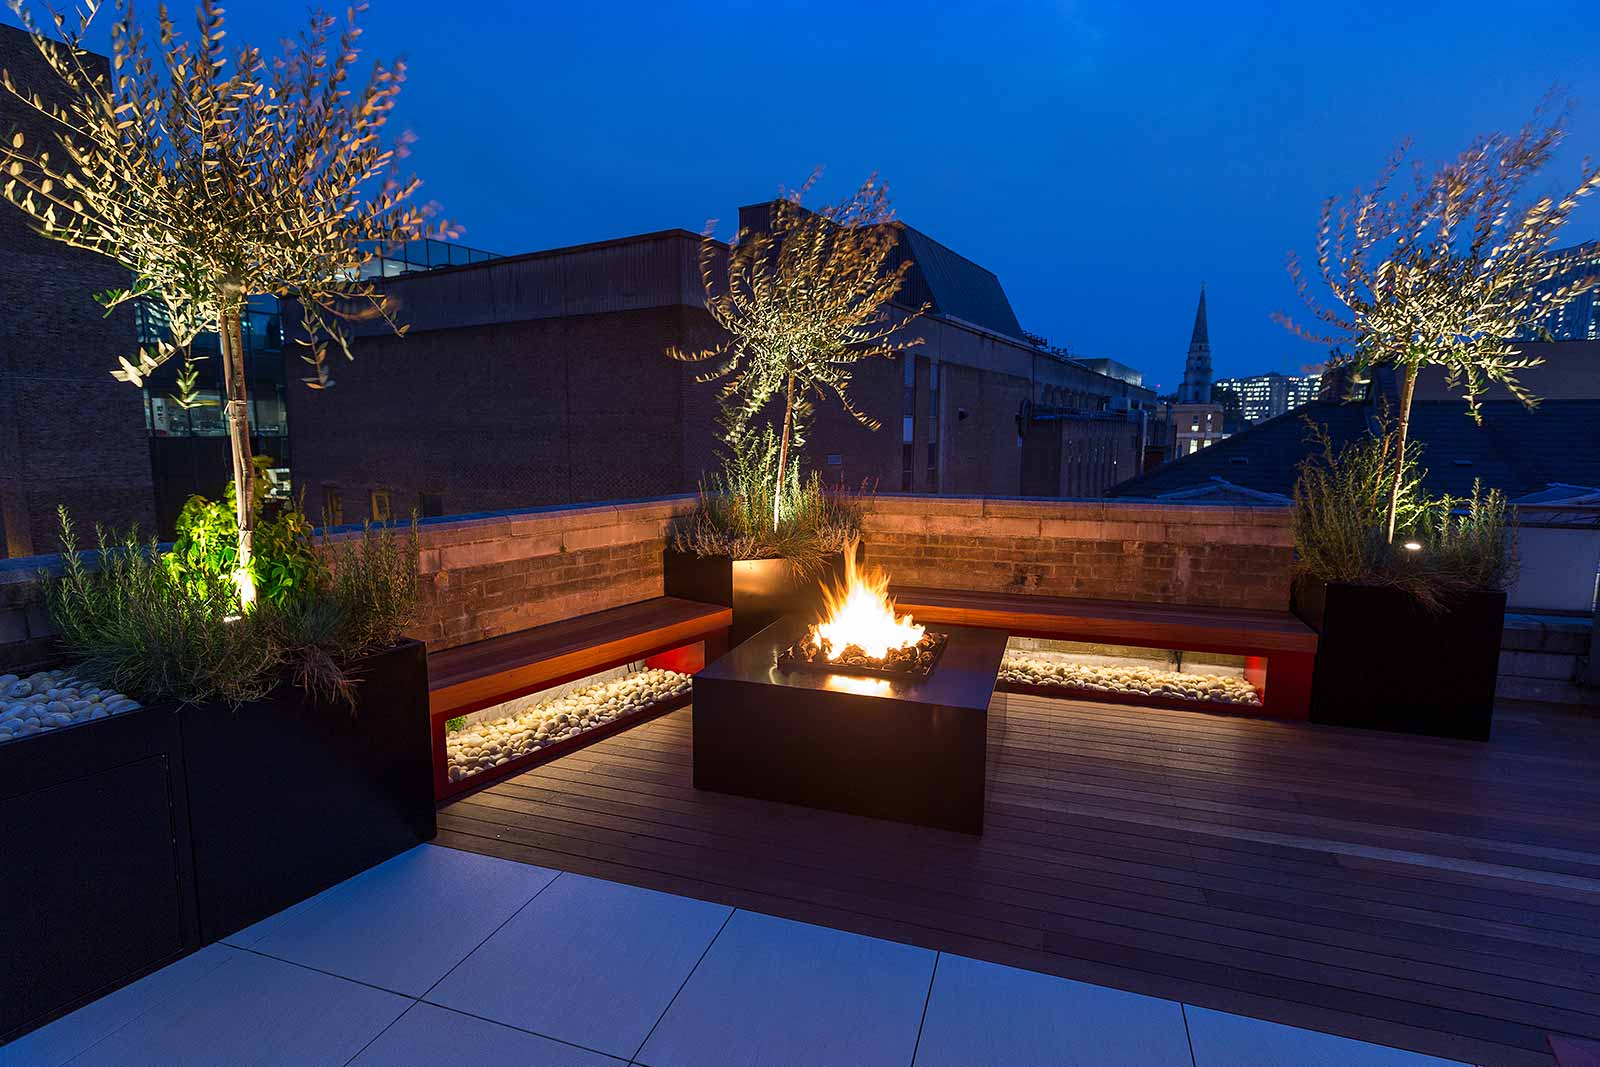 Shoreditch Roof Terrace Design In London